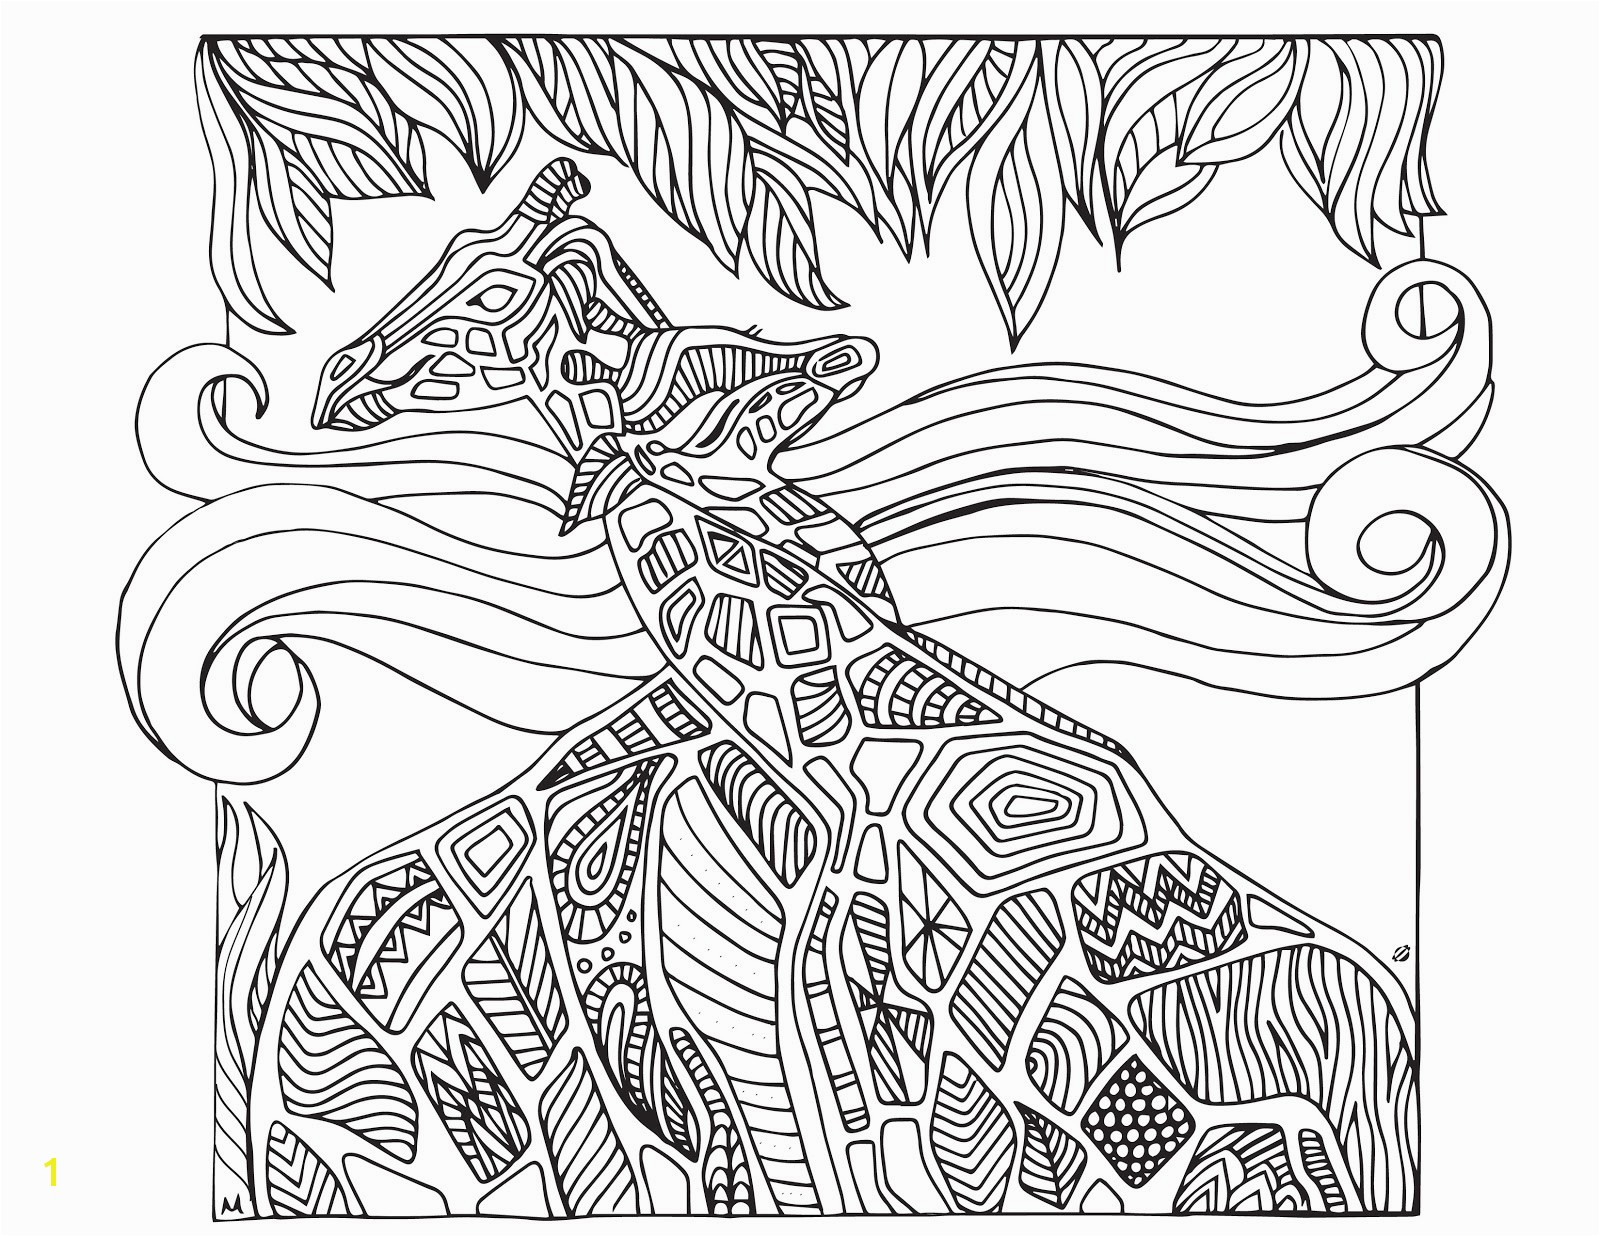 Free Printable Coloring Pages for Adults Advanced New Free Printable Coloring Pages for Adults Advanced Dragons